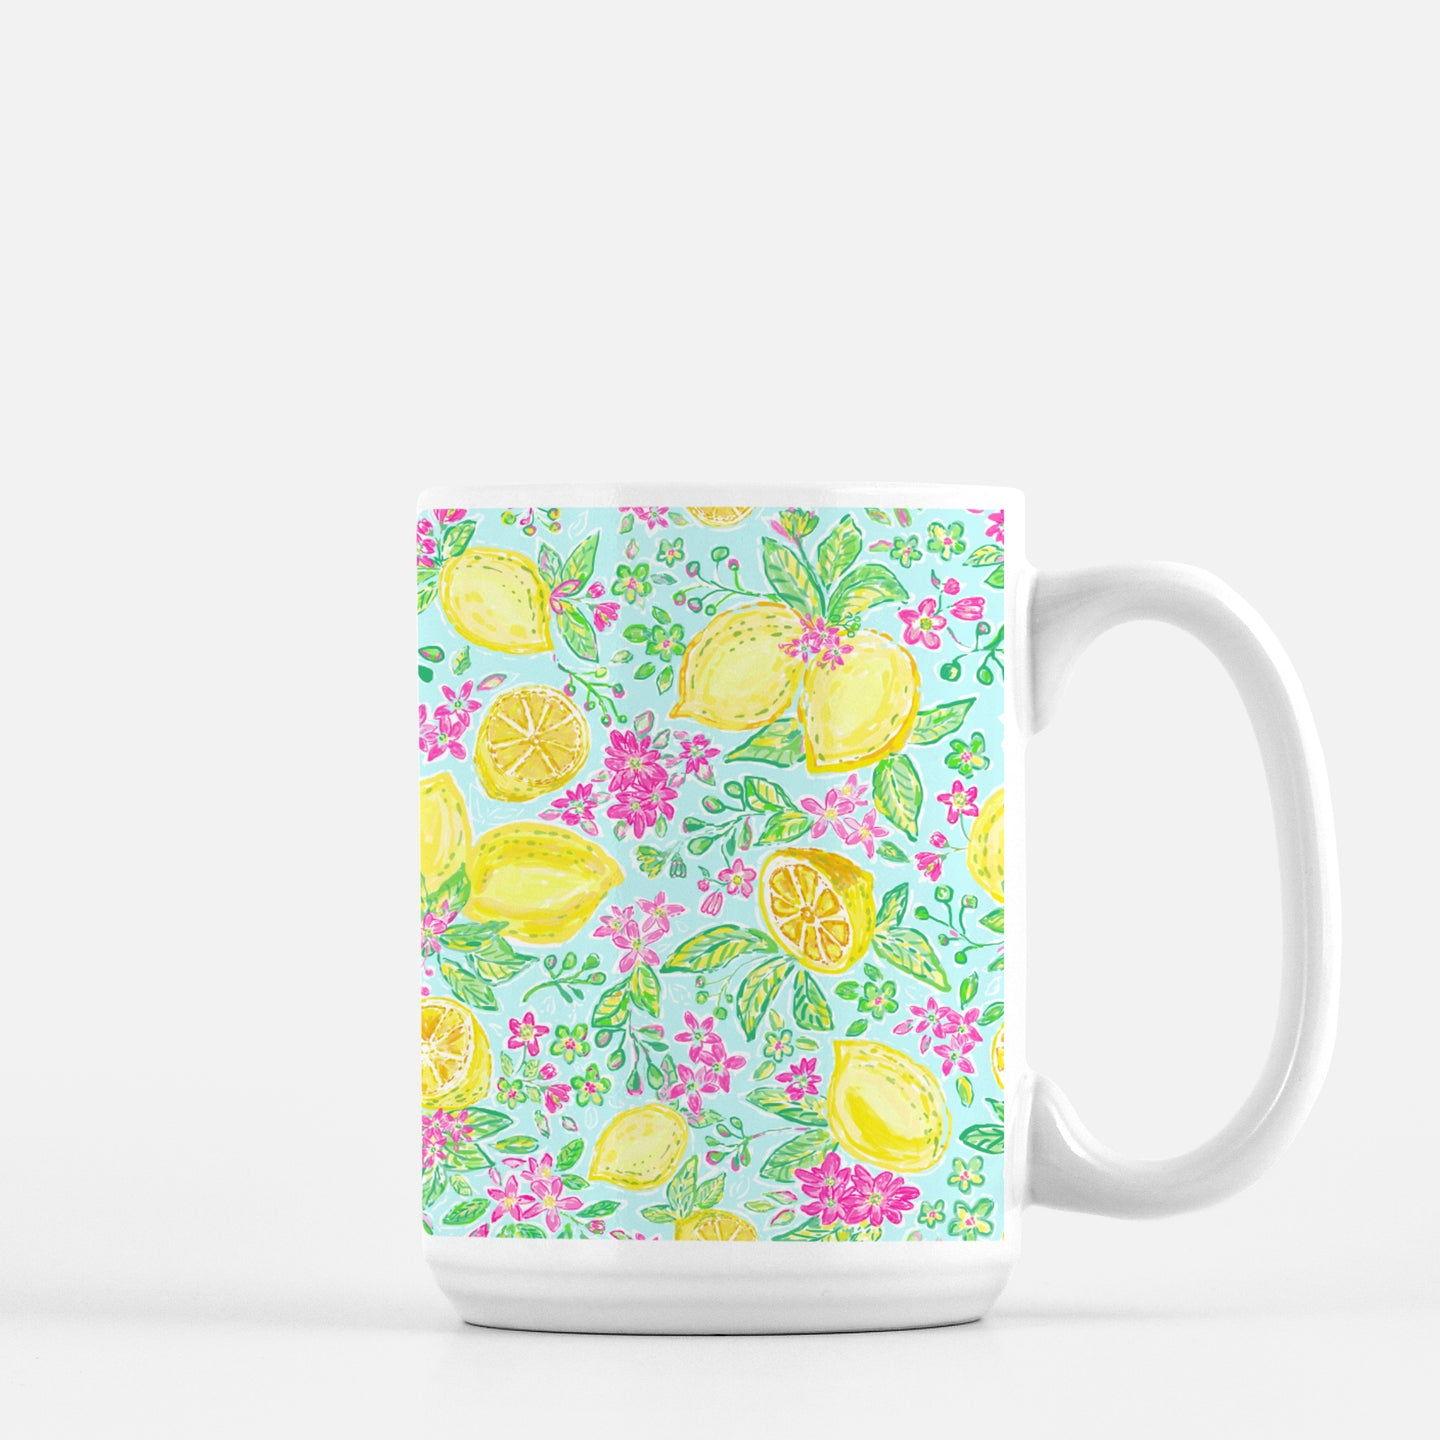 Mug in the lemon Joy Print - Diga Linda